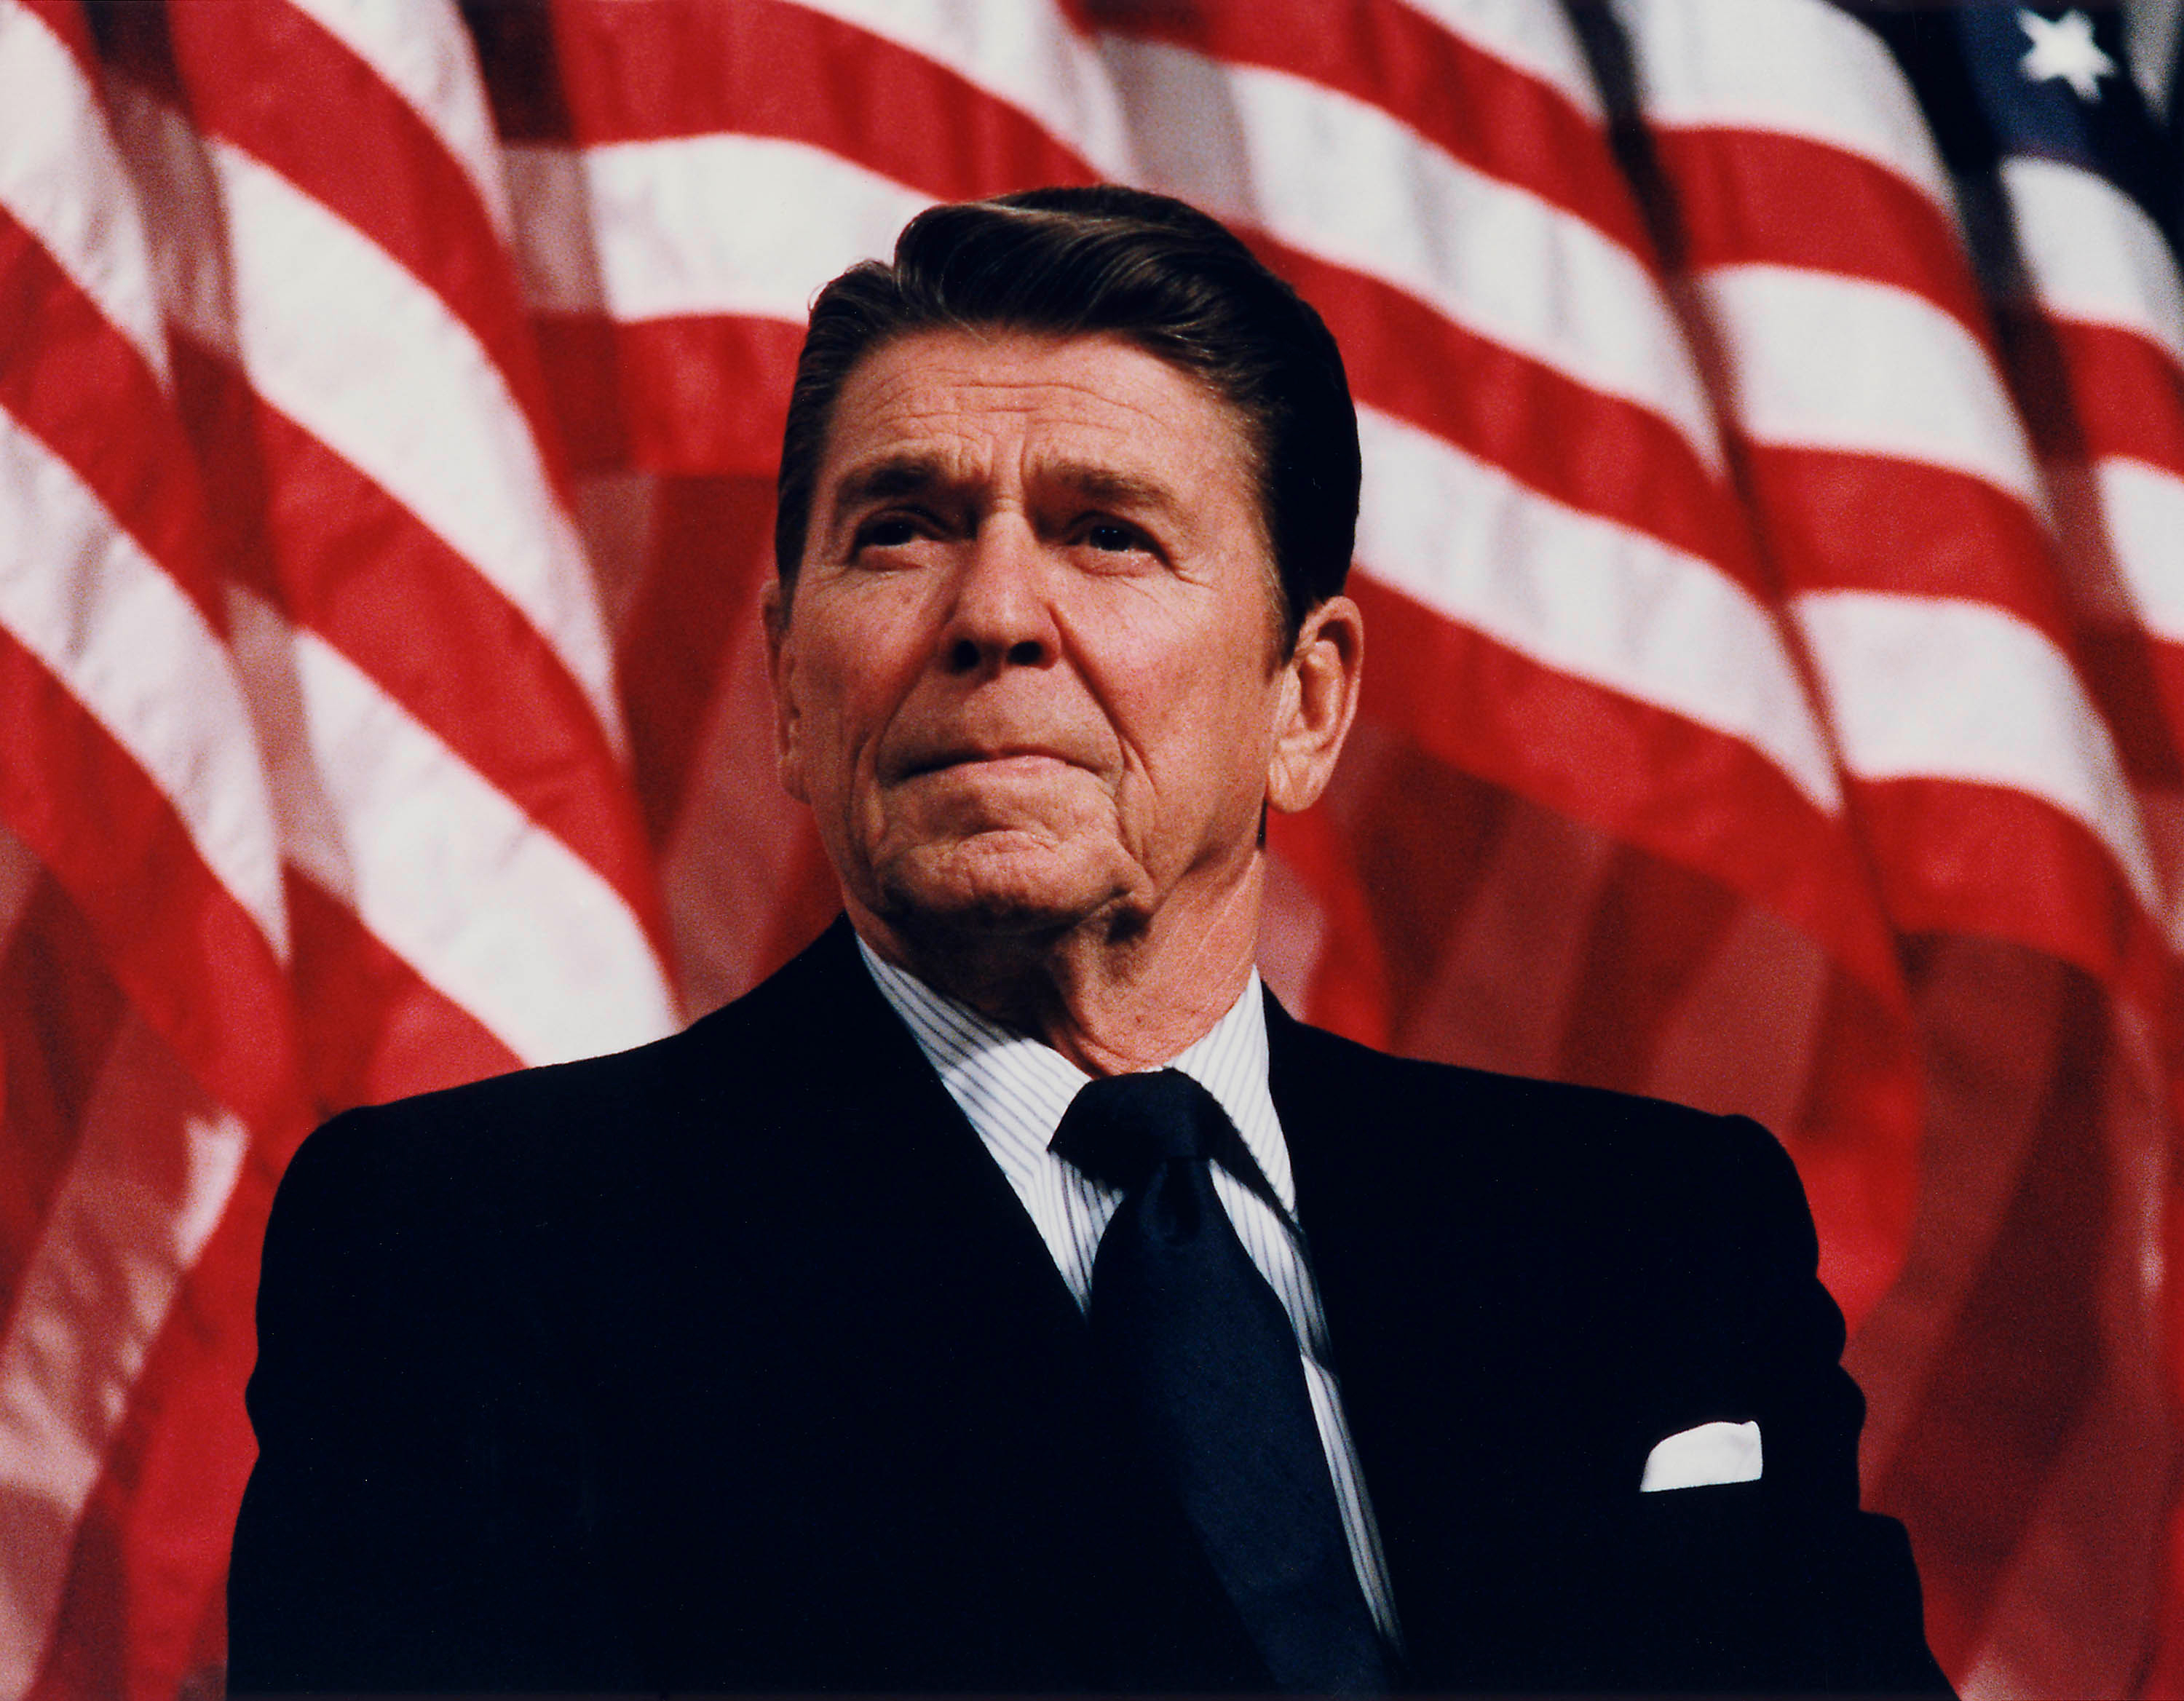 President Reagan in front of a flag